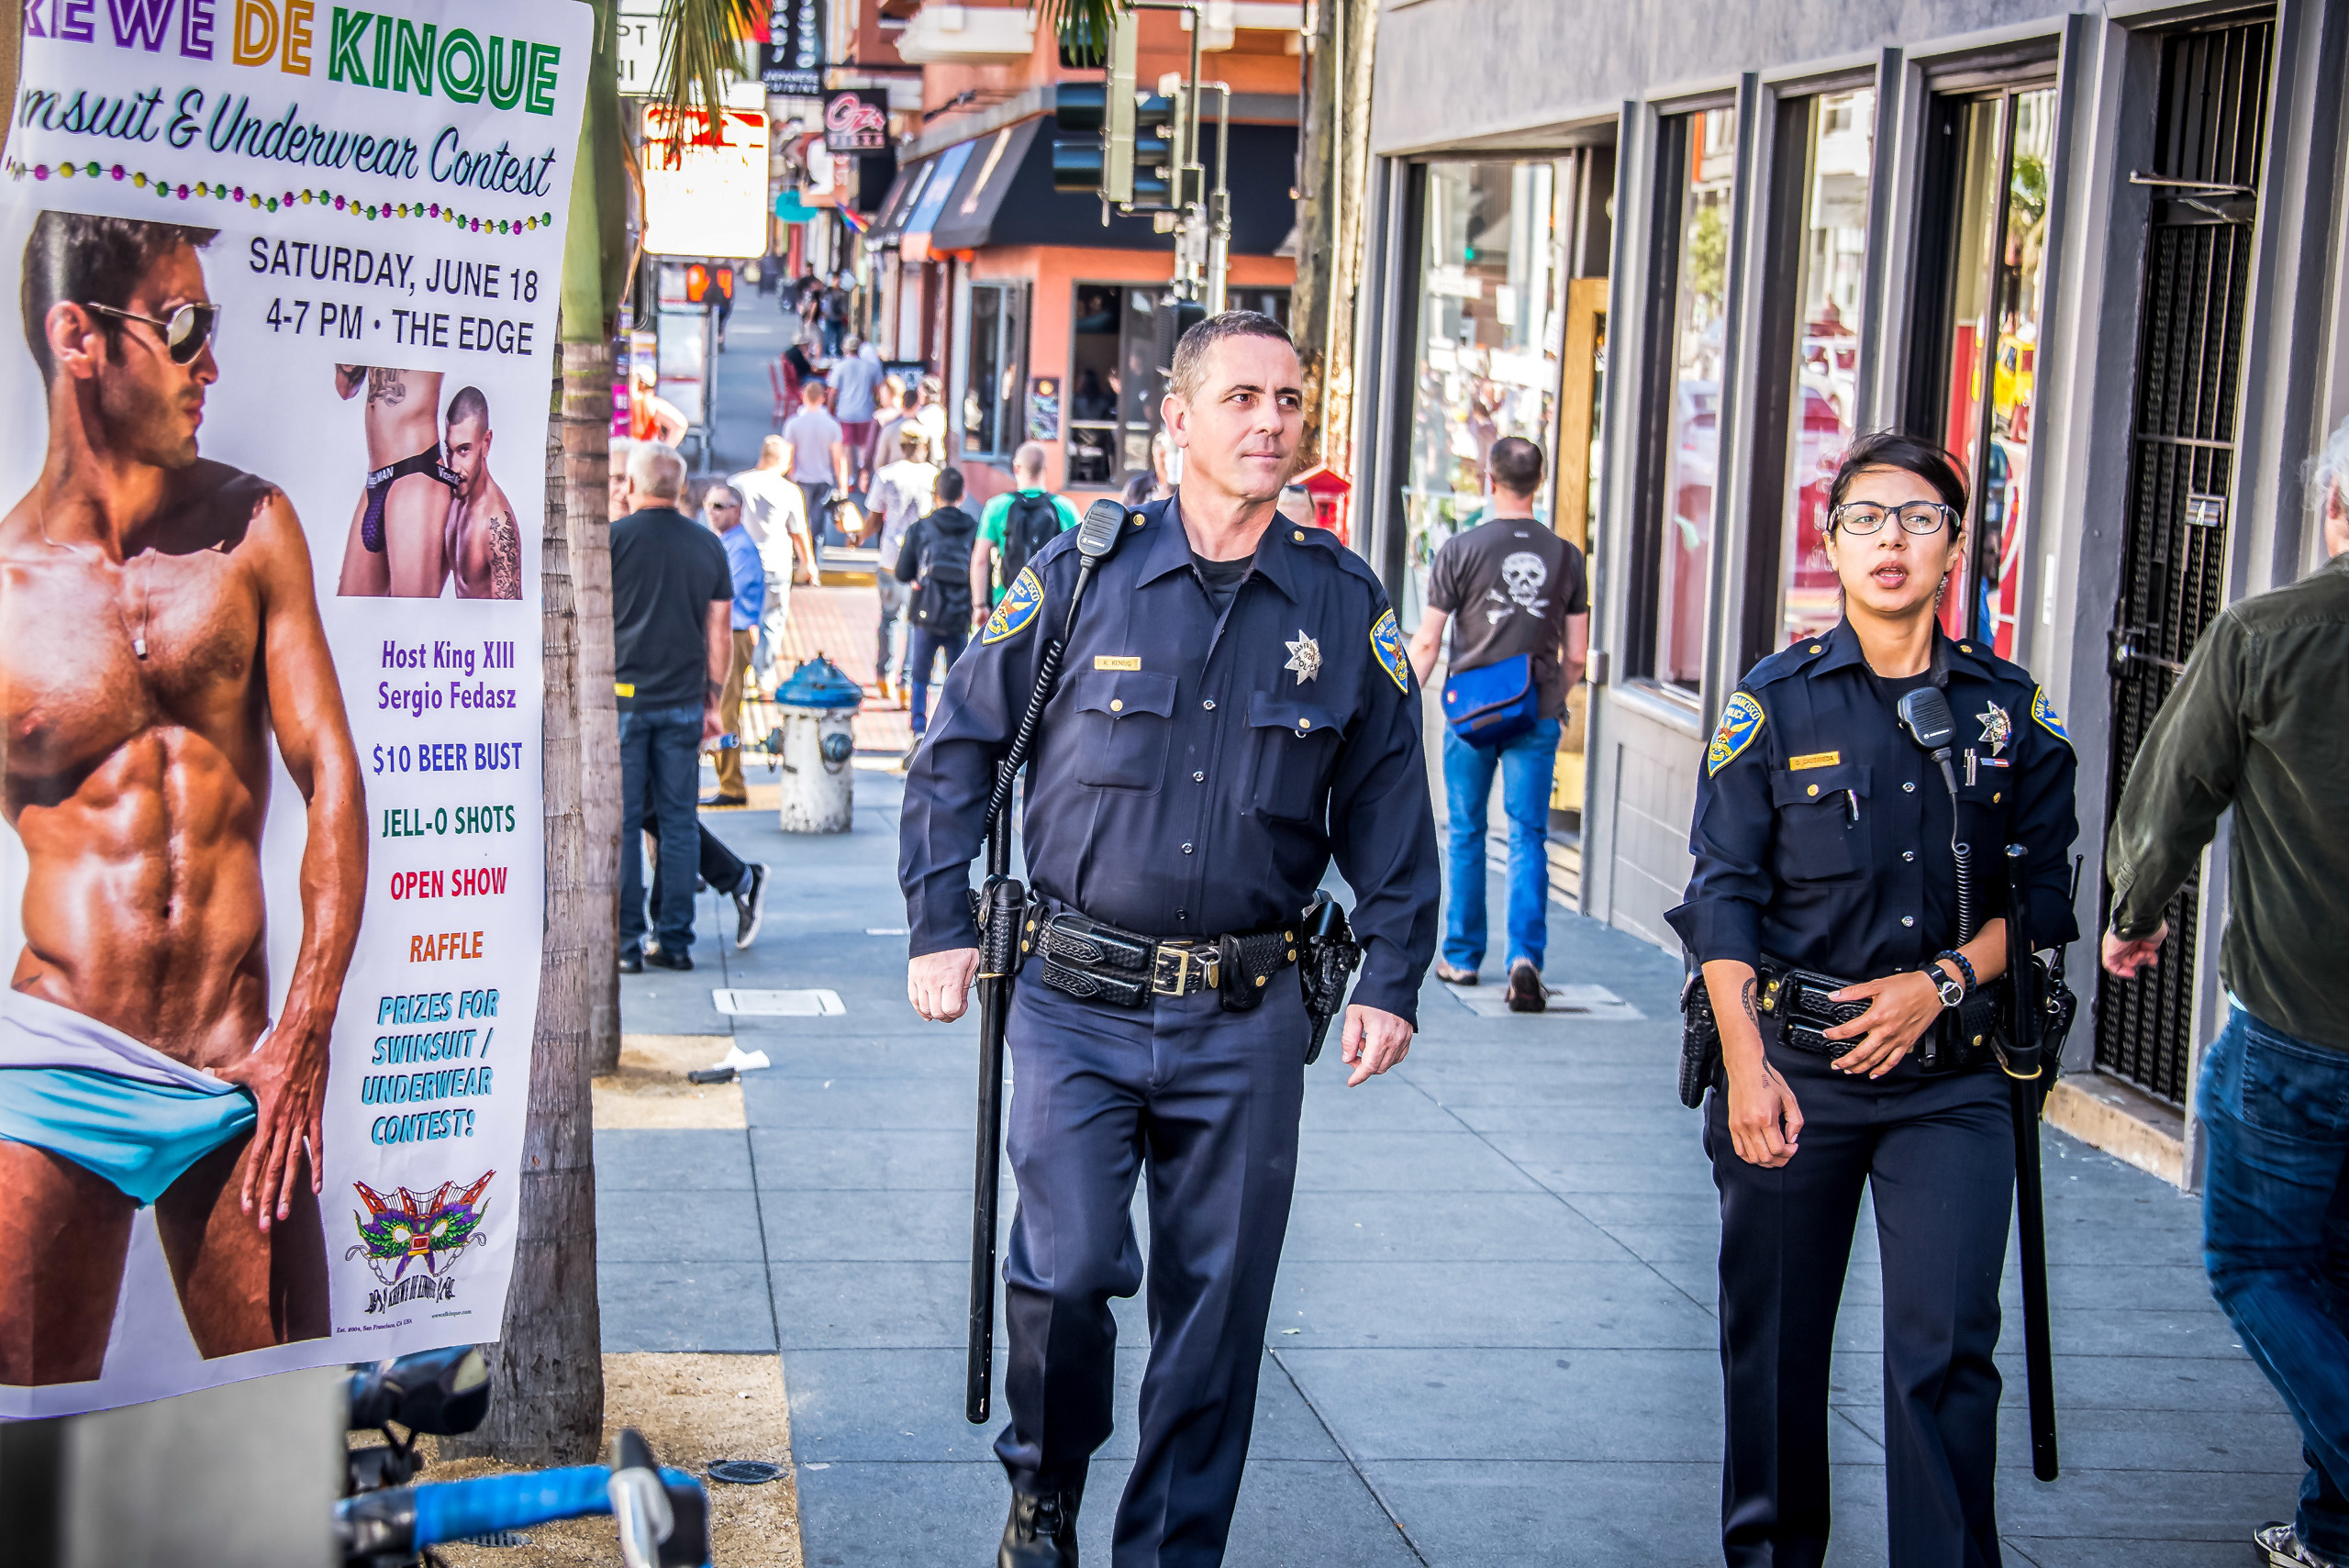 SFPD Officers patrol Castro Street in San Francisco on June 18, 2016.